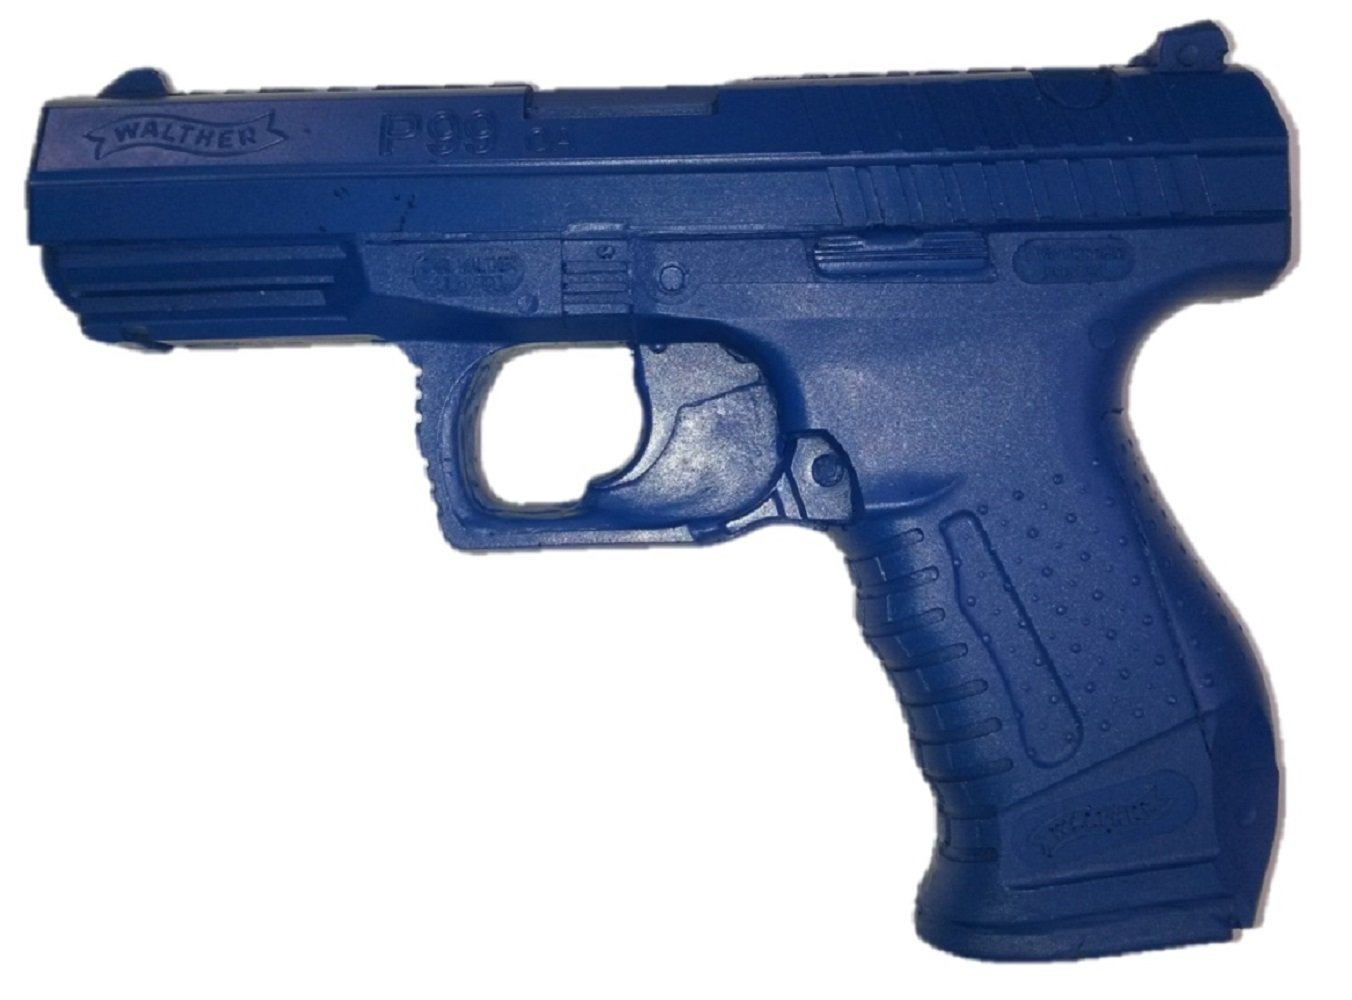 Blueguns WALTHER P99 Simulator Blue - CHK-SHIELD | Outdoor Army - Tactical Gear Shop